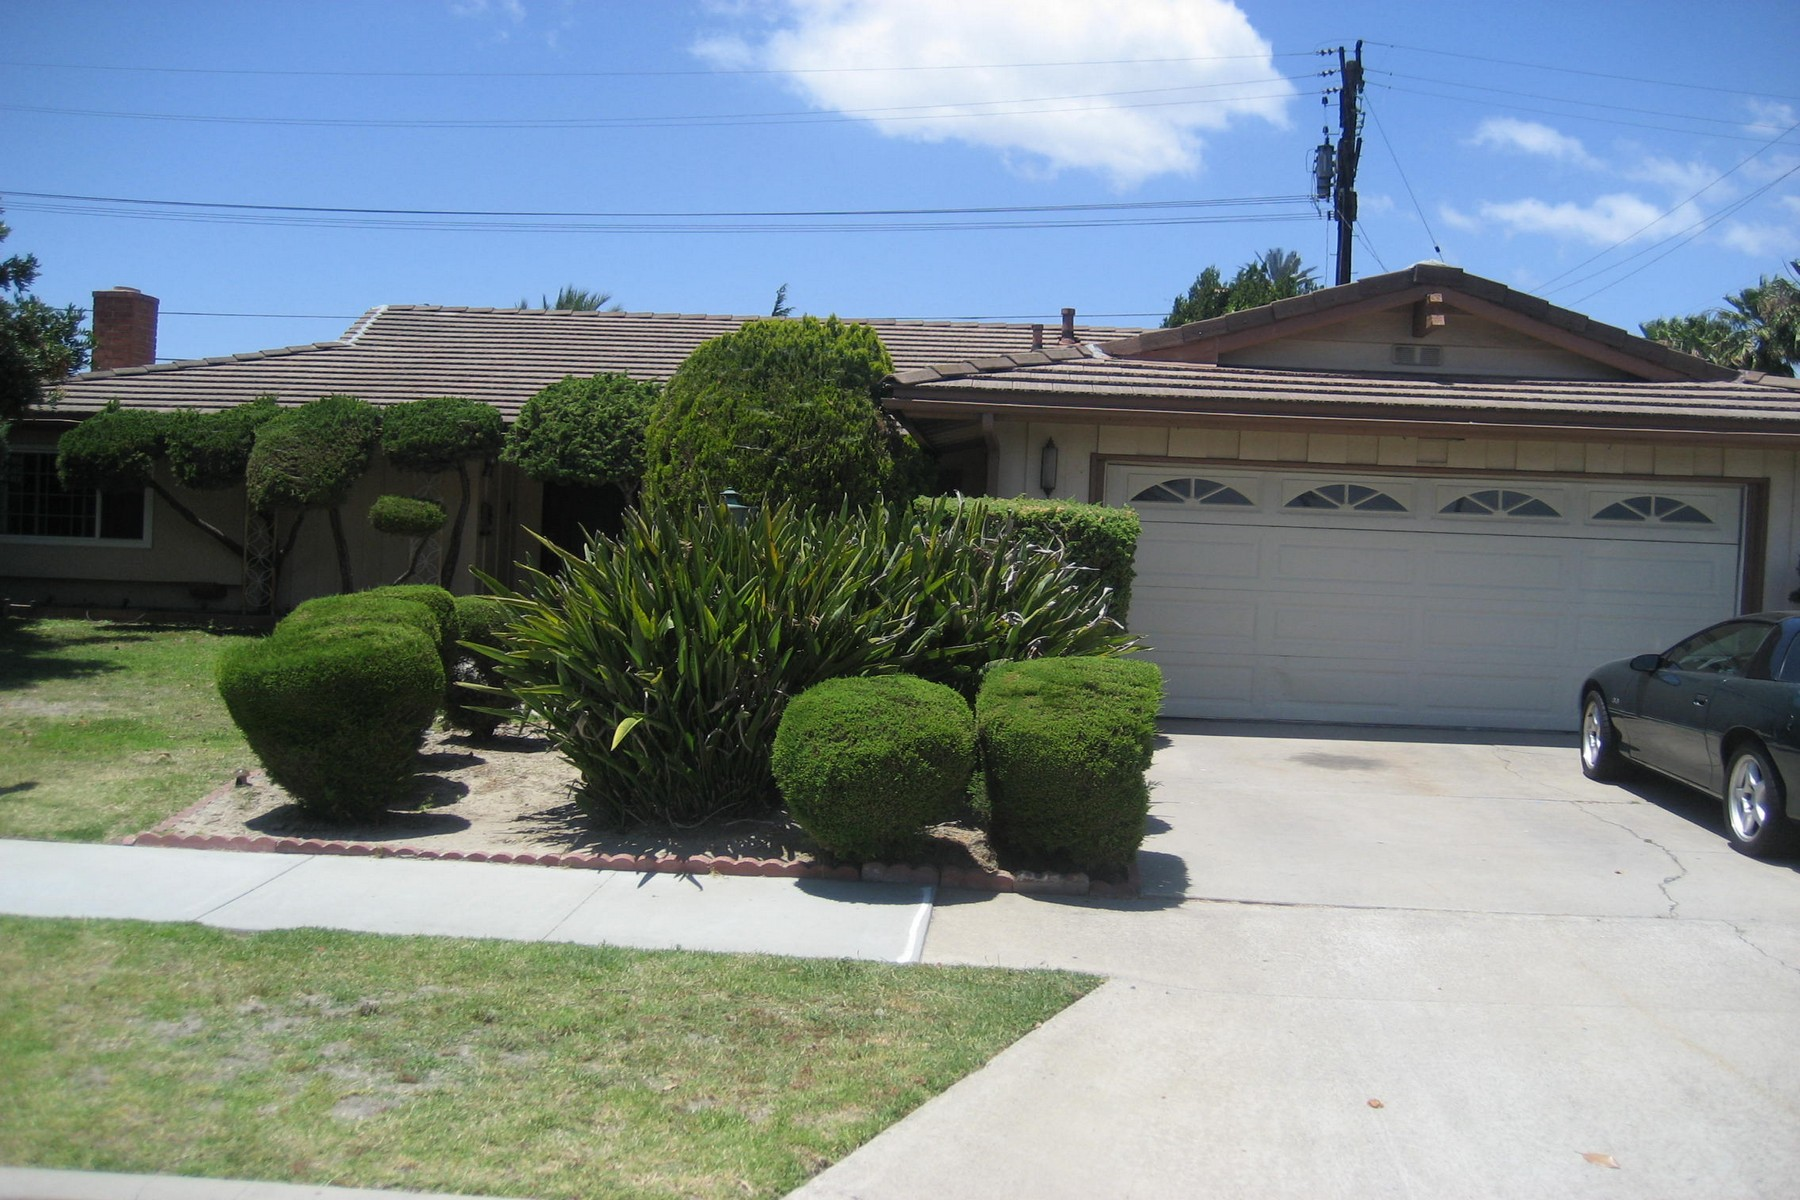 Single Family Home for Sale at 543 N. Hanover Street Anaheim, California 92801 United States